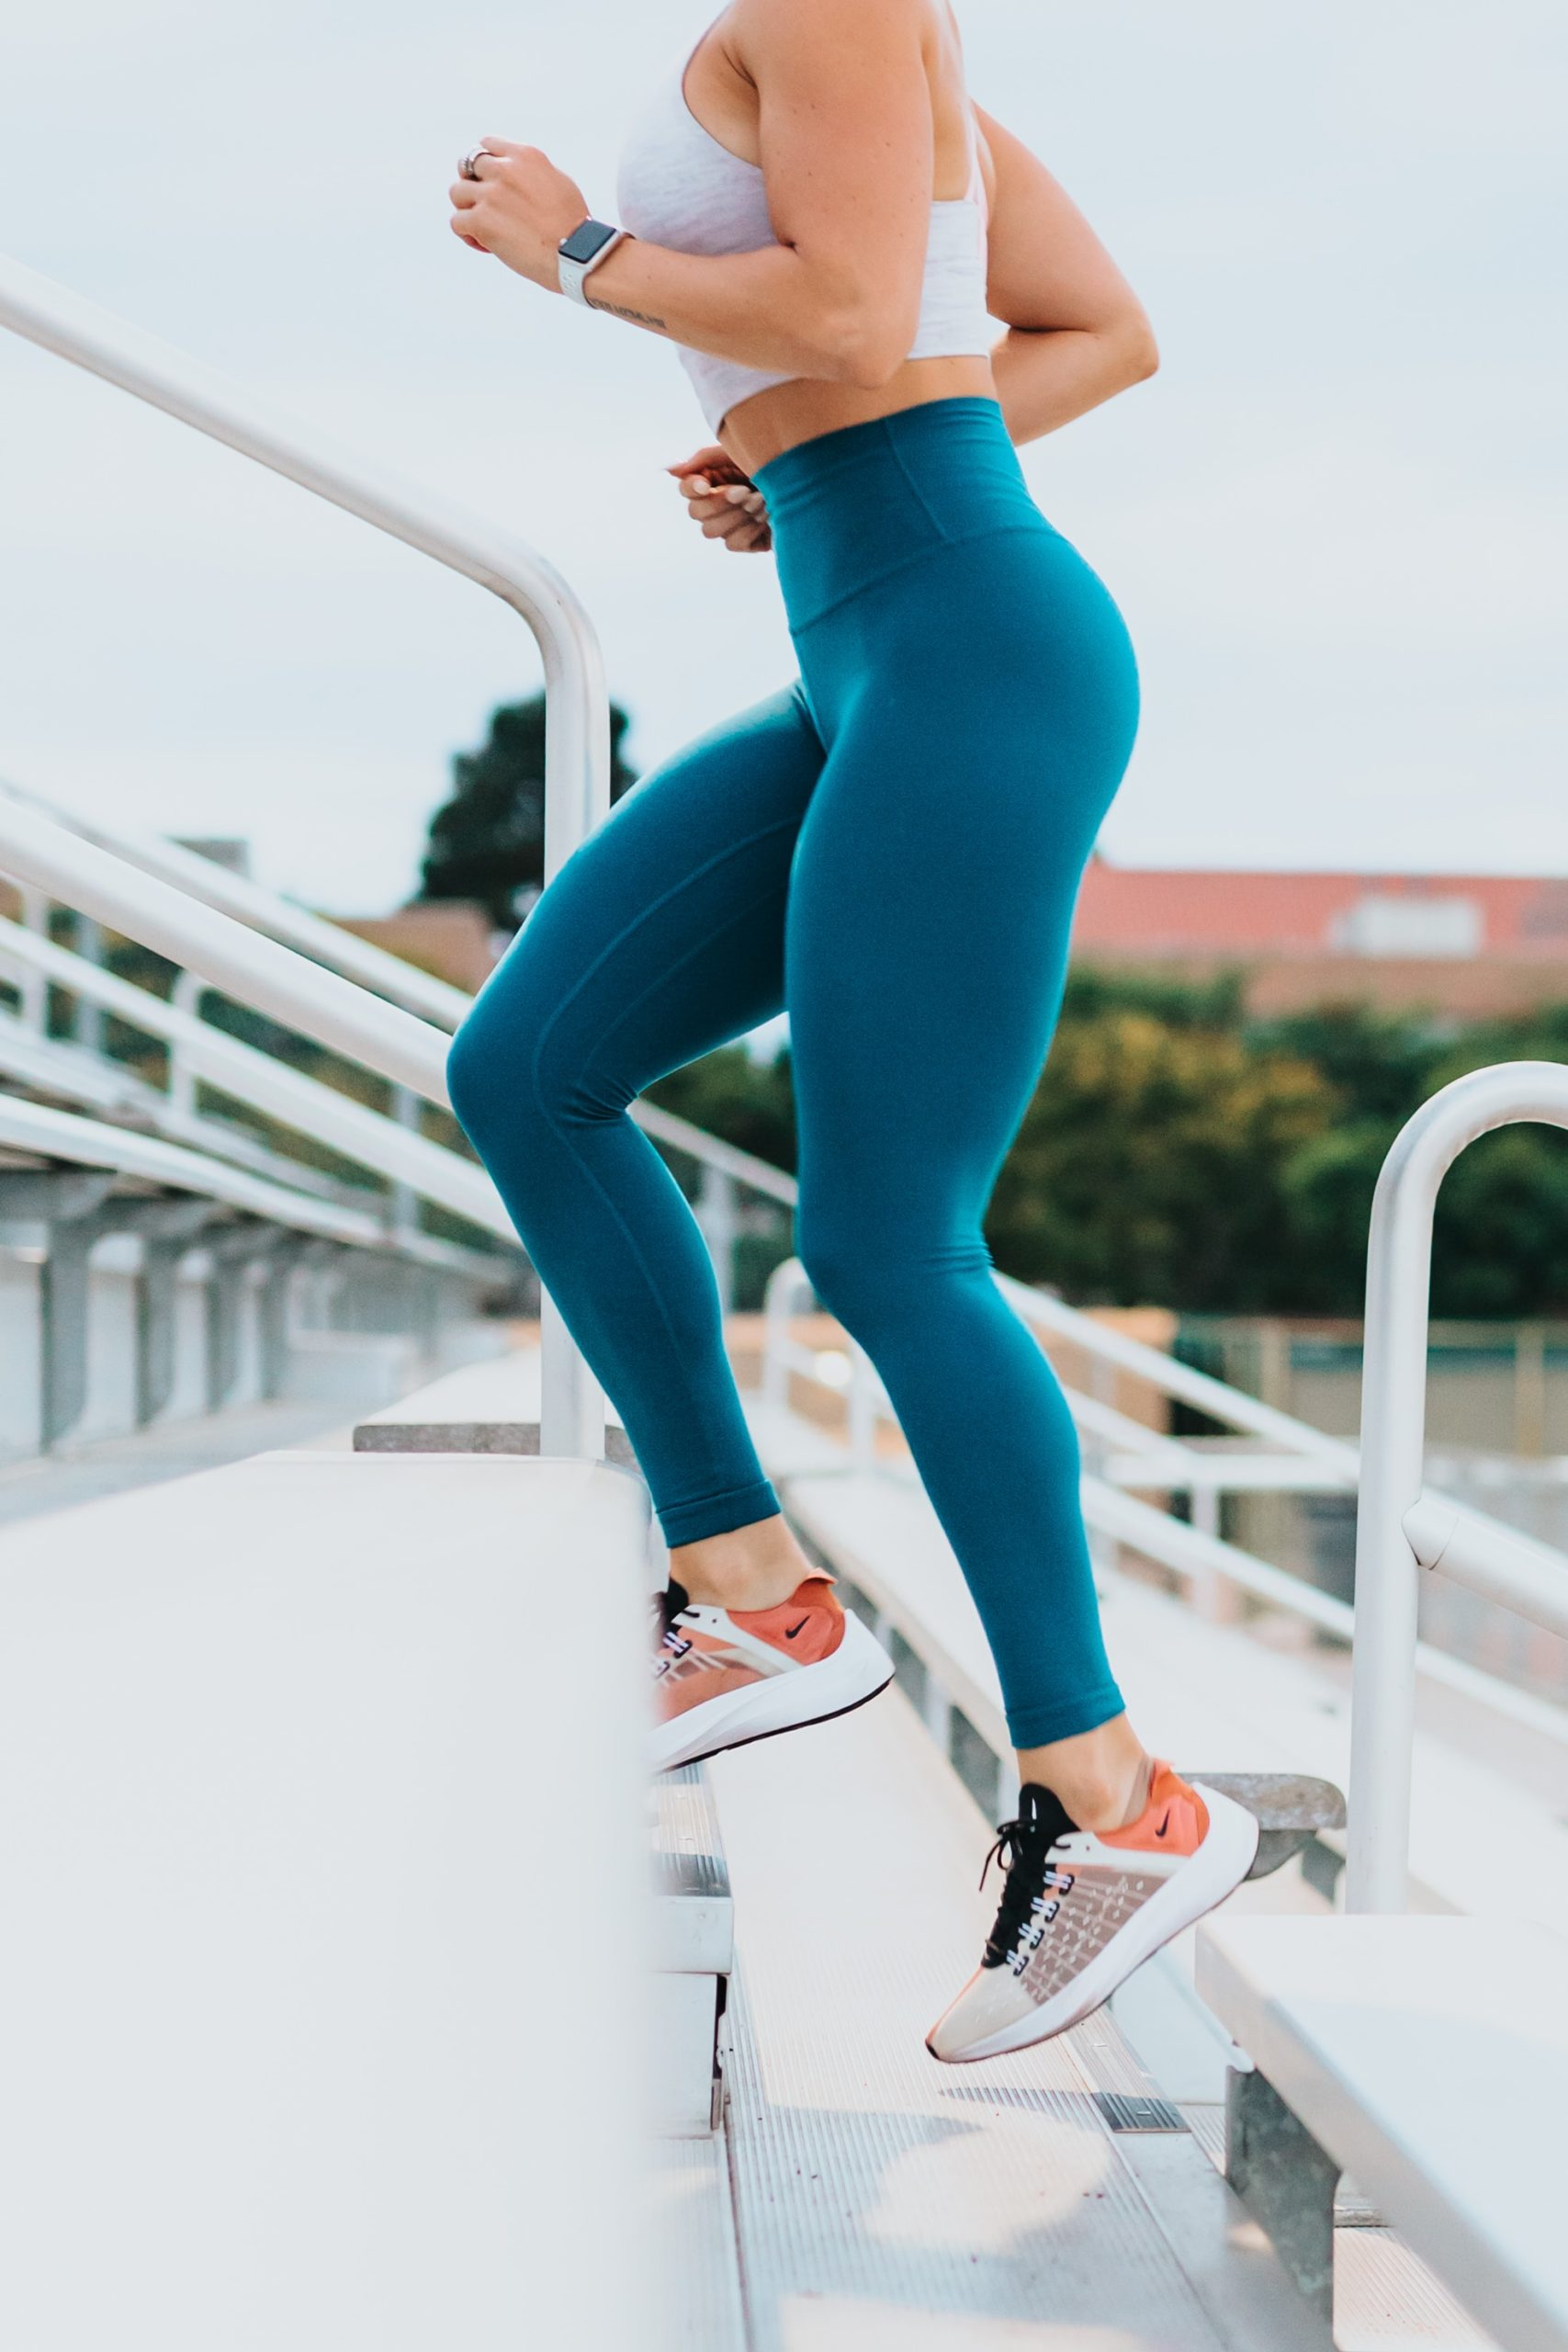 How Exercise Can Control Your Lipoprotein Profile